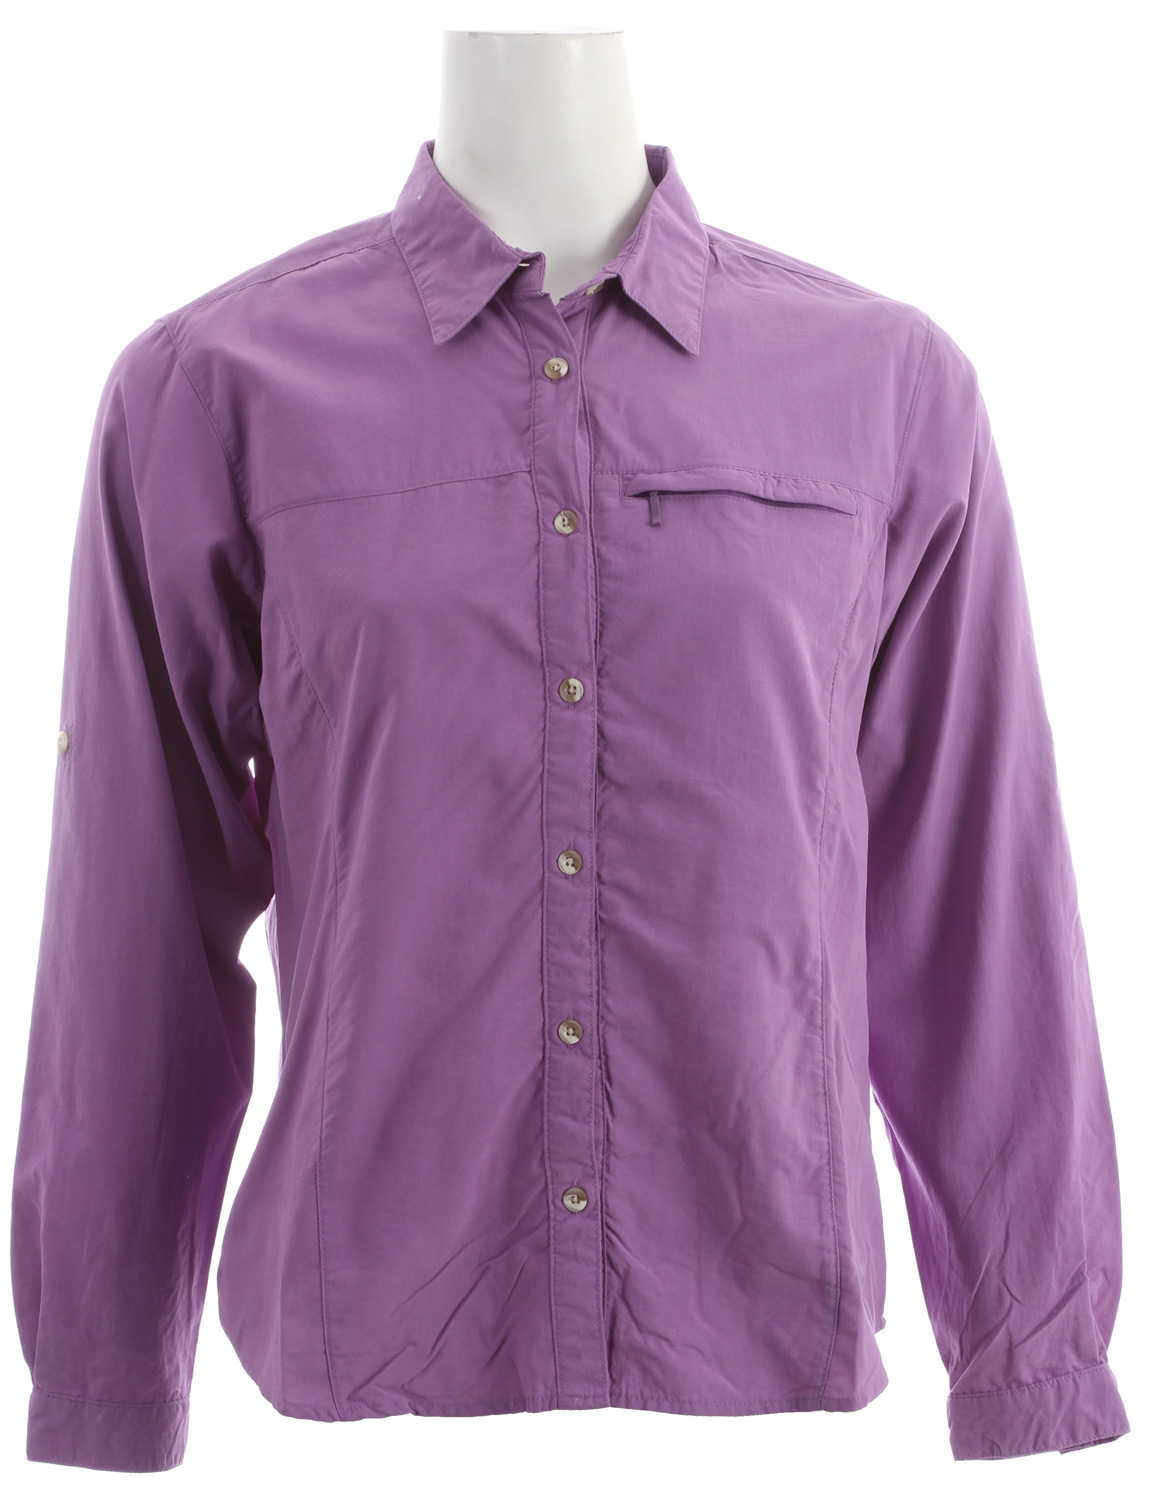 "Entertainment Traveling abroad (or into your own backyard  on sunny summer days calls for the White Sierra Swamp L/S Shirt for women. Complete with roll-up sleeves, a zip-secure chest pocket and wicking properties, this women's technical long sleeve button-down has got you covered. Not to mention, with built-in UPF 30 and Insect Shield bug repellent, this lightweight wonder helps keep you out of the sun and away from bugs, so you can spend all summer outside.Key Features of the White Sierra Swamp L/S Shirt:  TRAVEL CLOTH  100% sanded nylon woven  UPF 30  Wicking  Insect Shield - bug repellent  Roll up sleeve  Zip secure chest pocket  Back venting  Fabric weight: 3oz  Center back length: 25"" - $35.95"